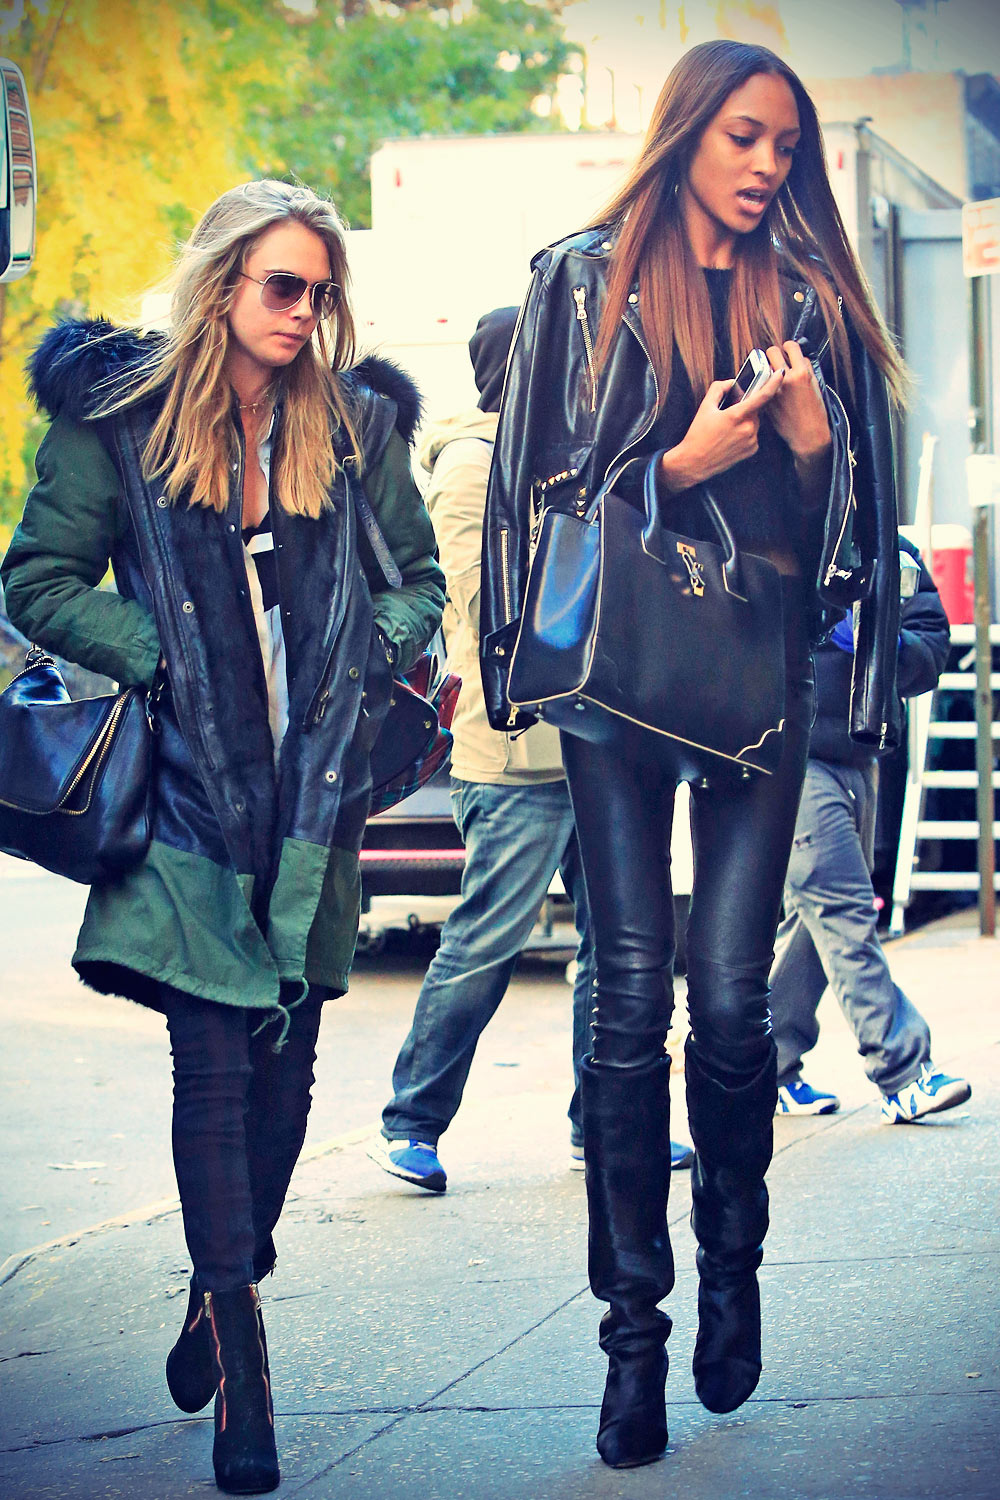 Cara Delevingne and Jourdan Dunn arrive together for VS Fashion Show